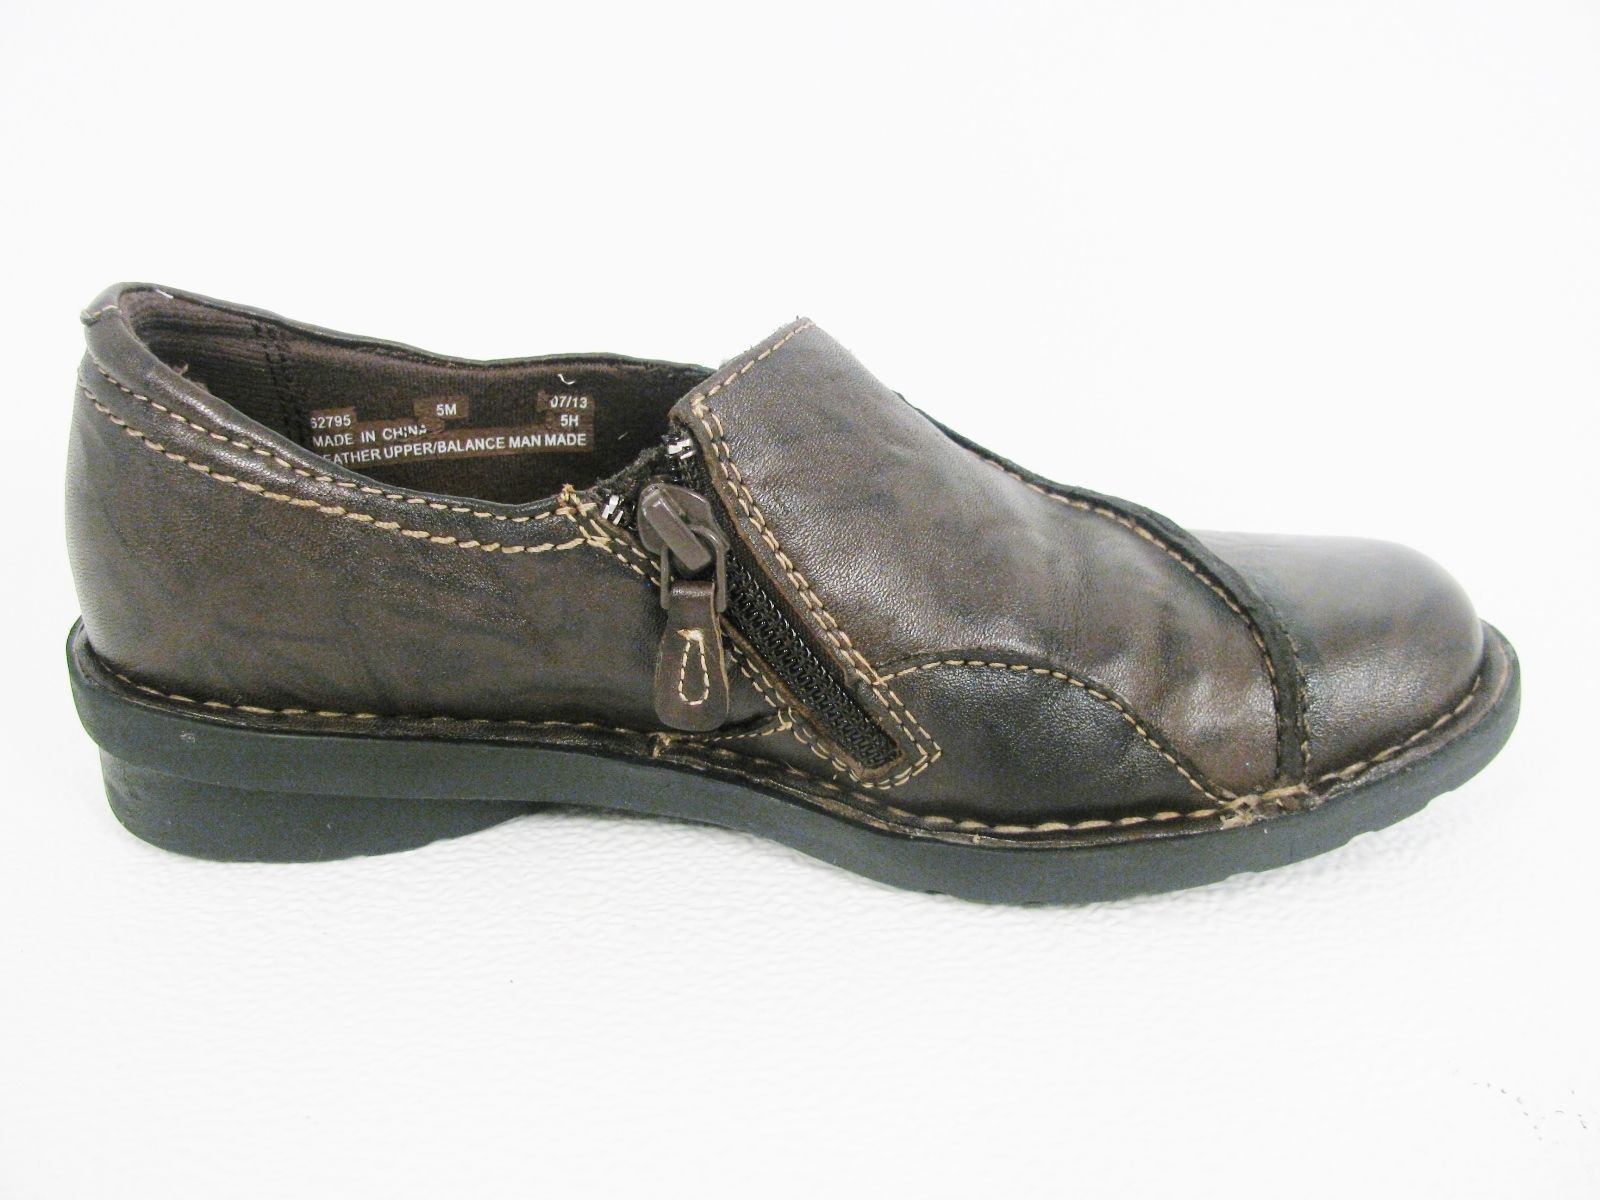 Clarks Women's Bendables Comfort Brown Leather Shoes Flats Slip On Side Zip 5 M